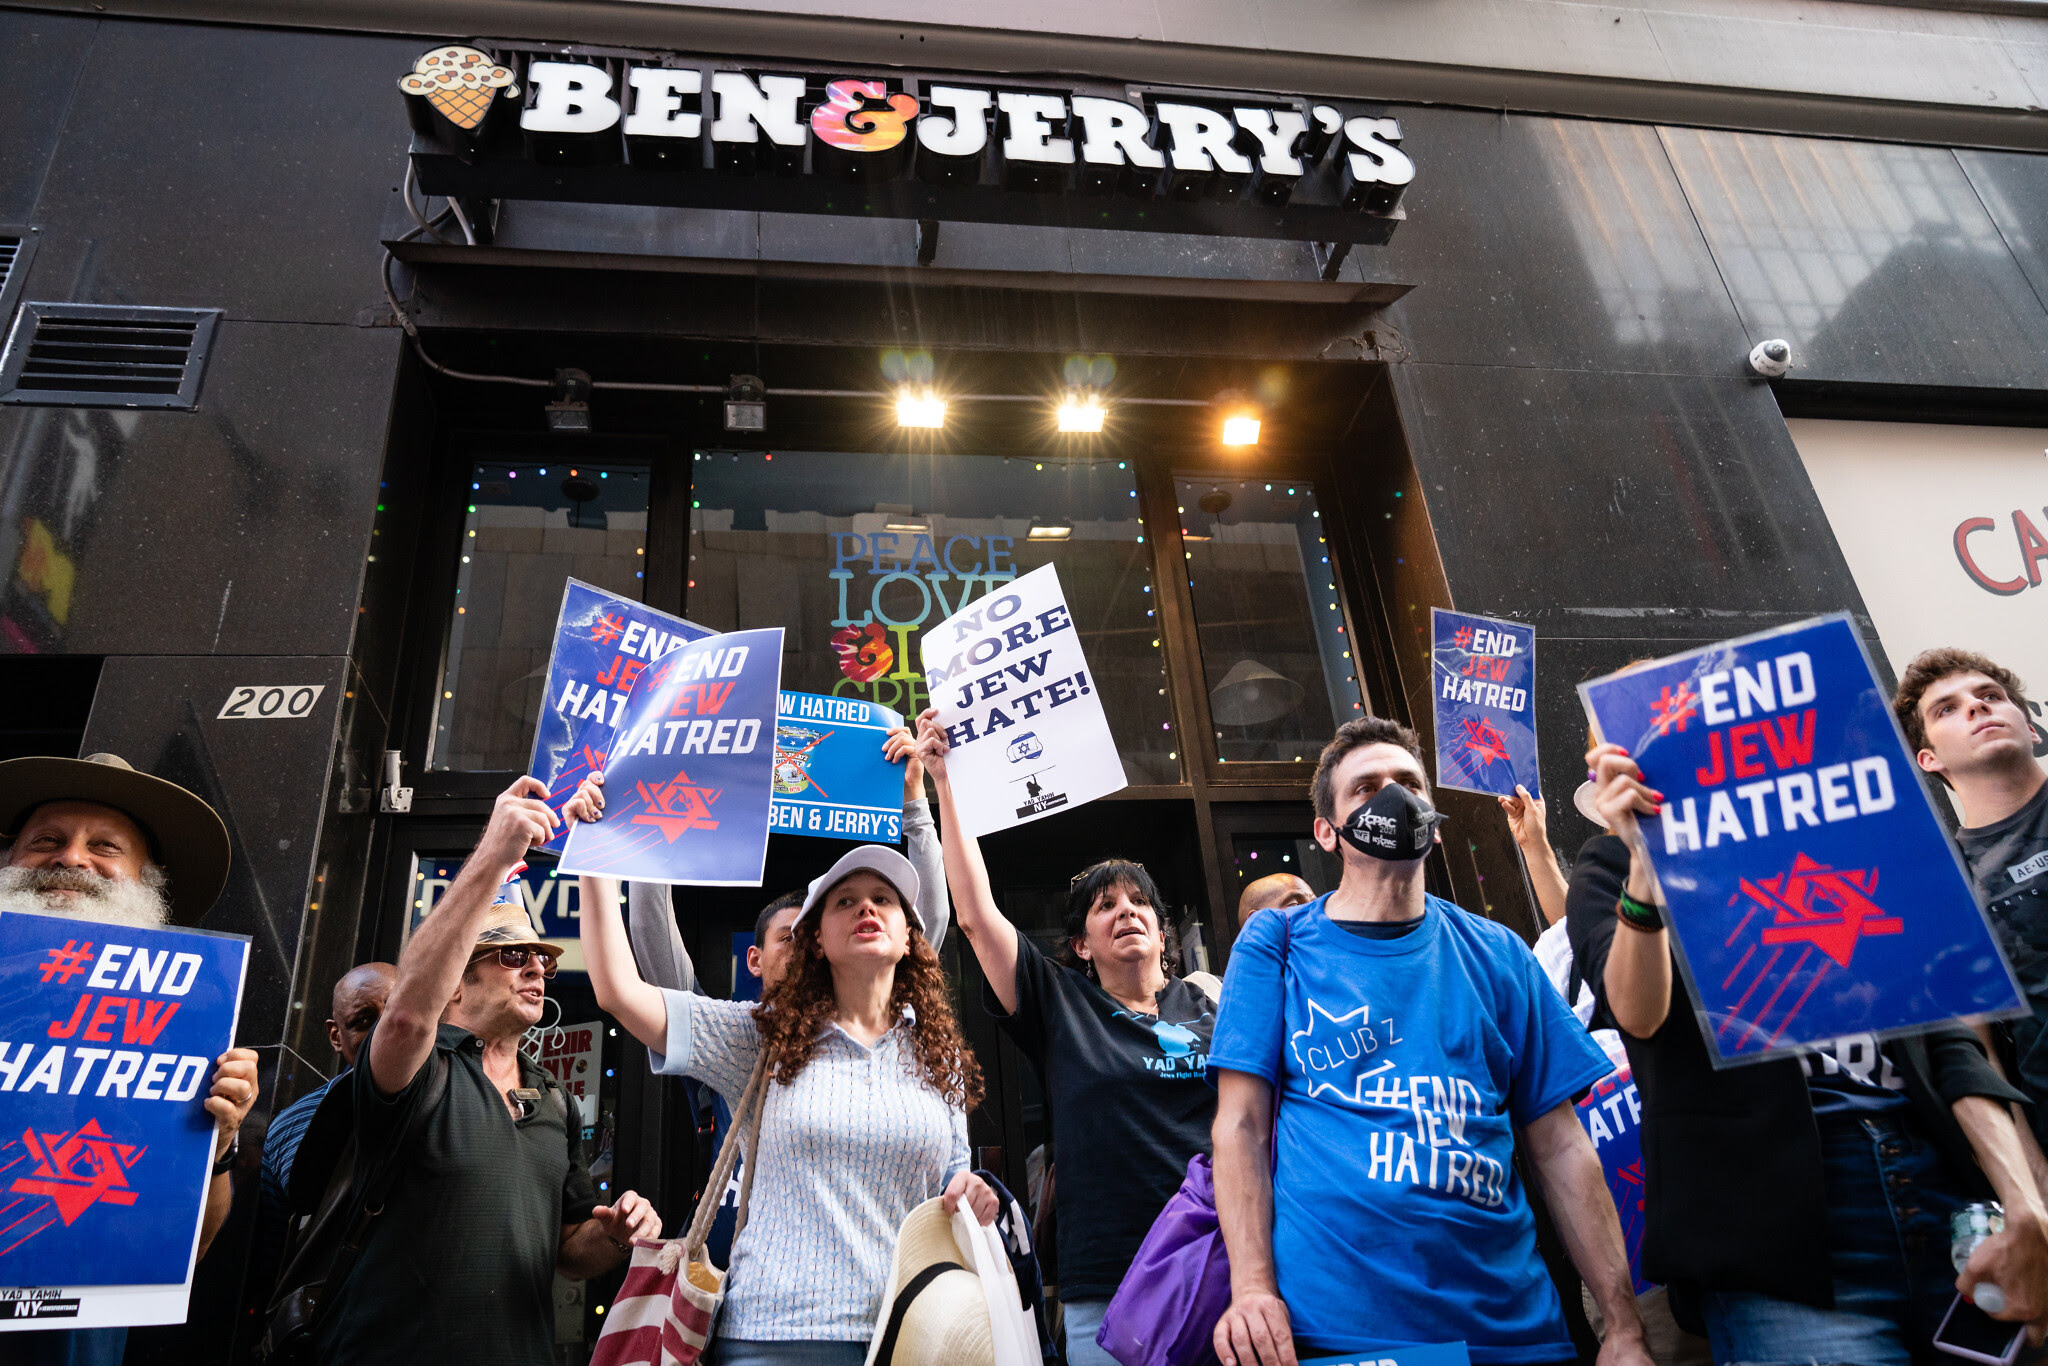 New Jersey moves to divest from Ben & Jerry's, Unilever over settlement ban